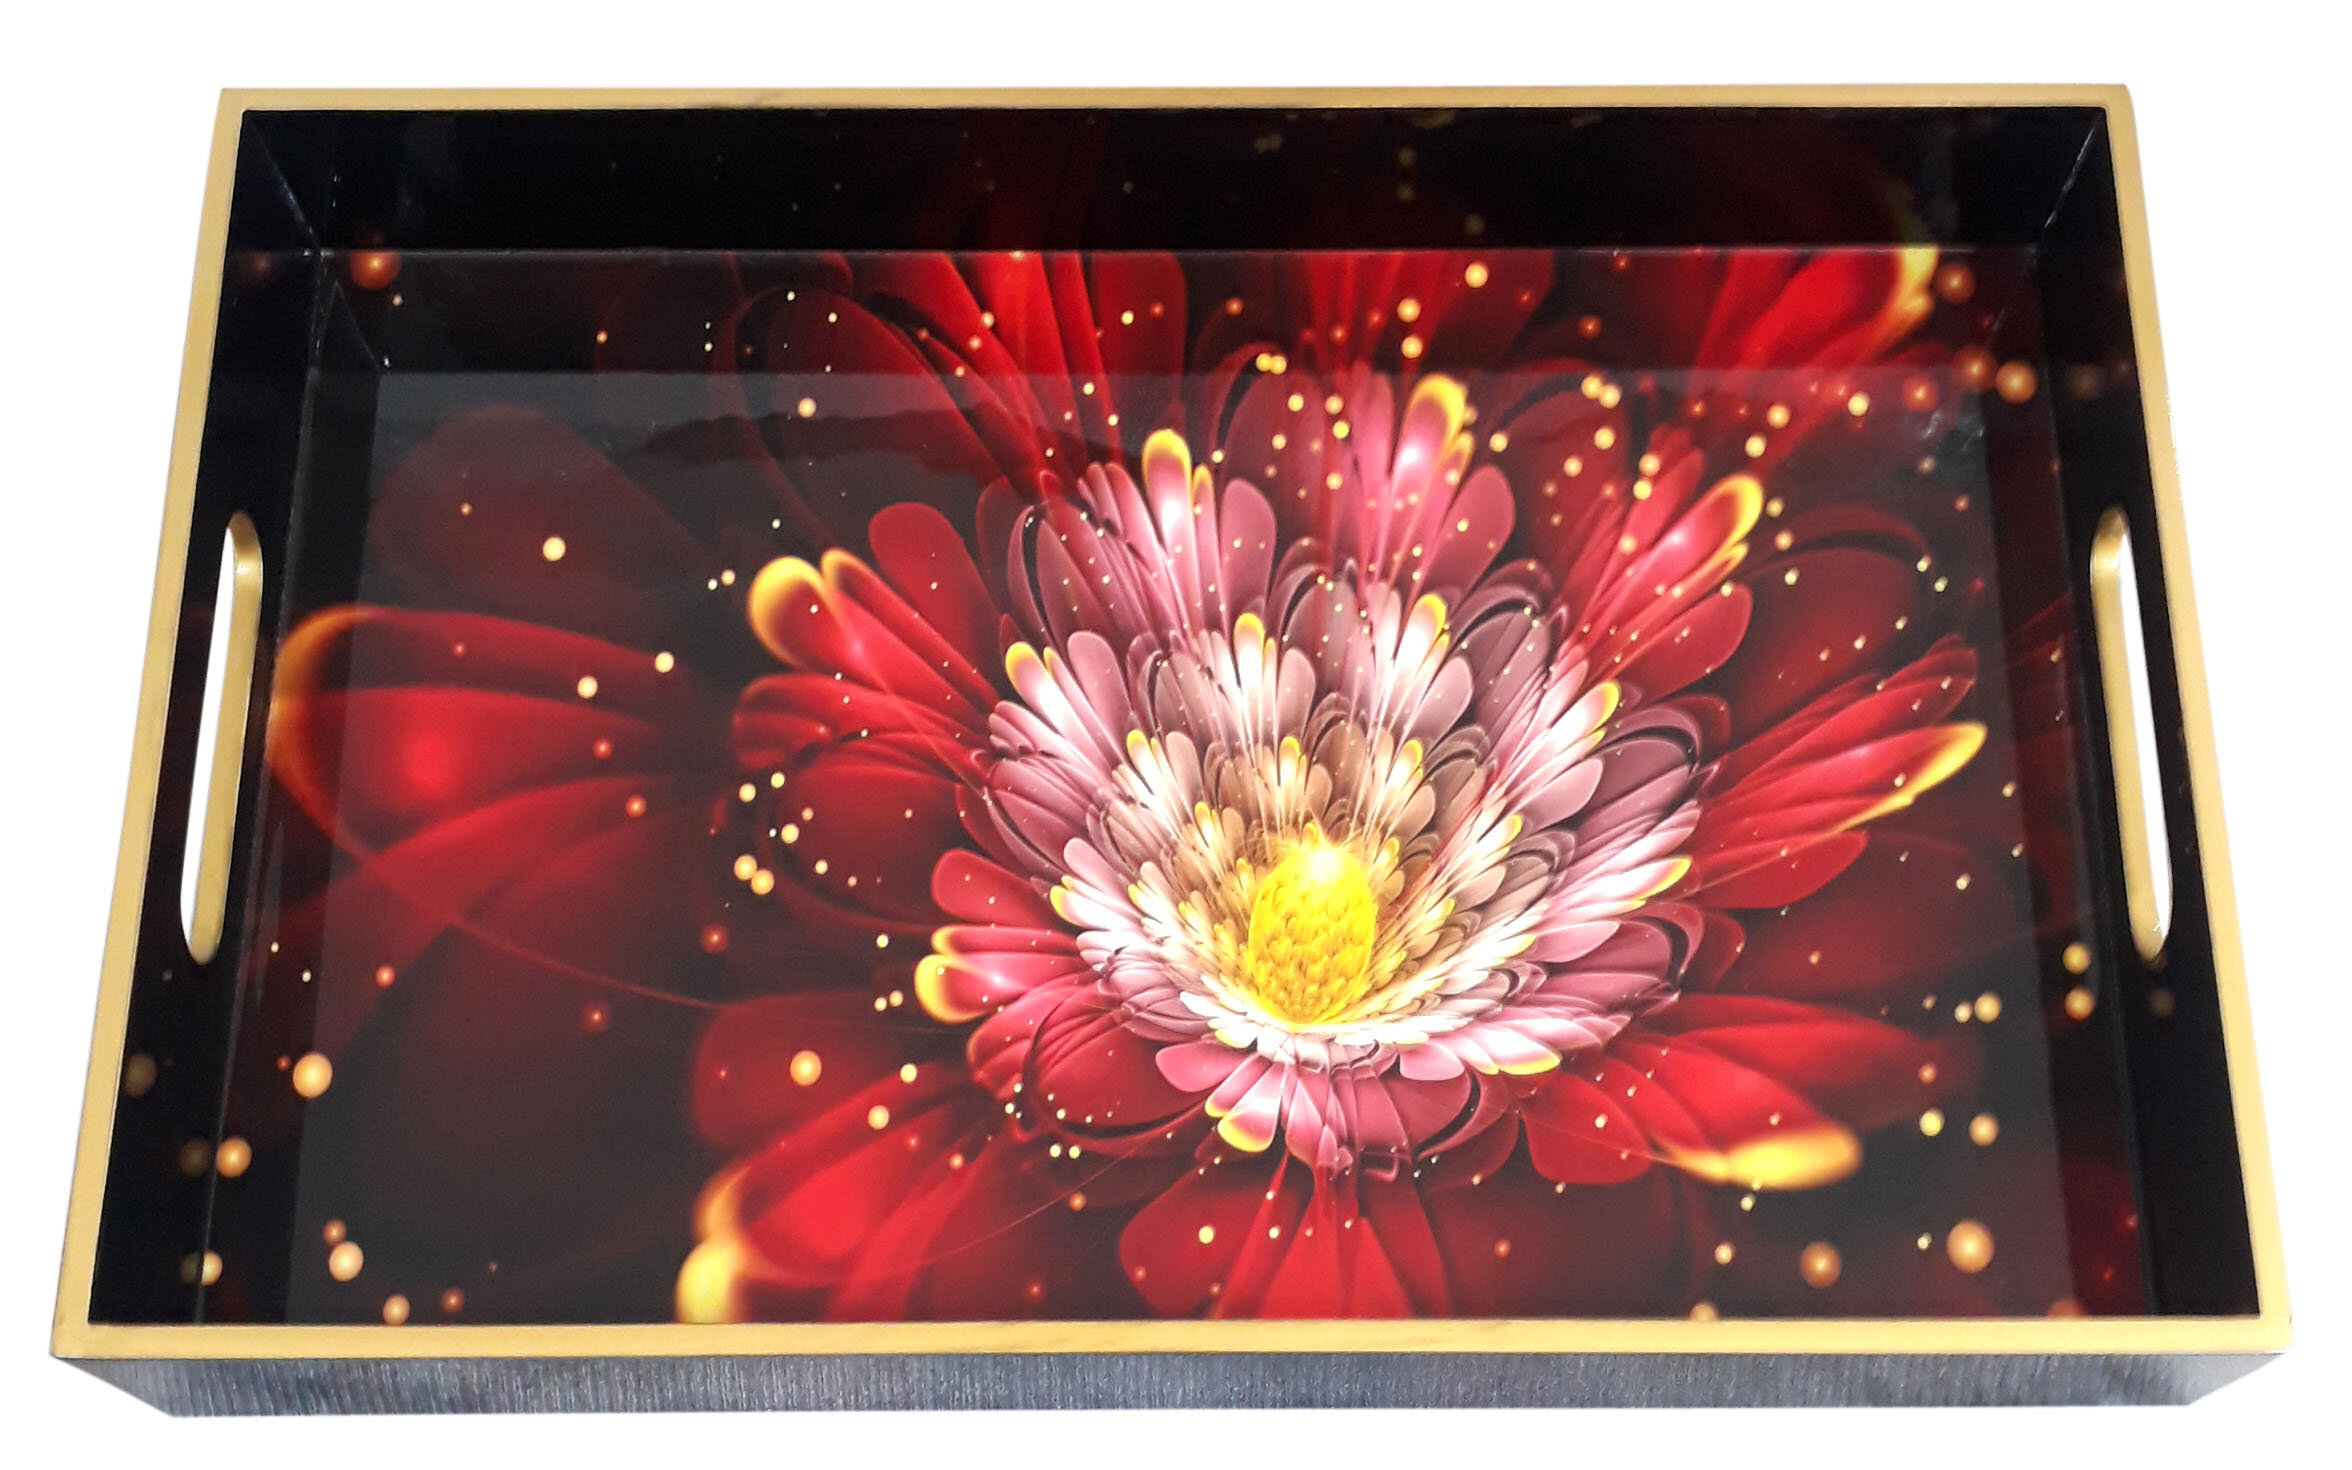 Rectg. Tray L size-Fractical Gold Flowers.jpg